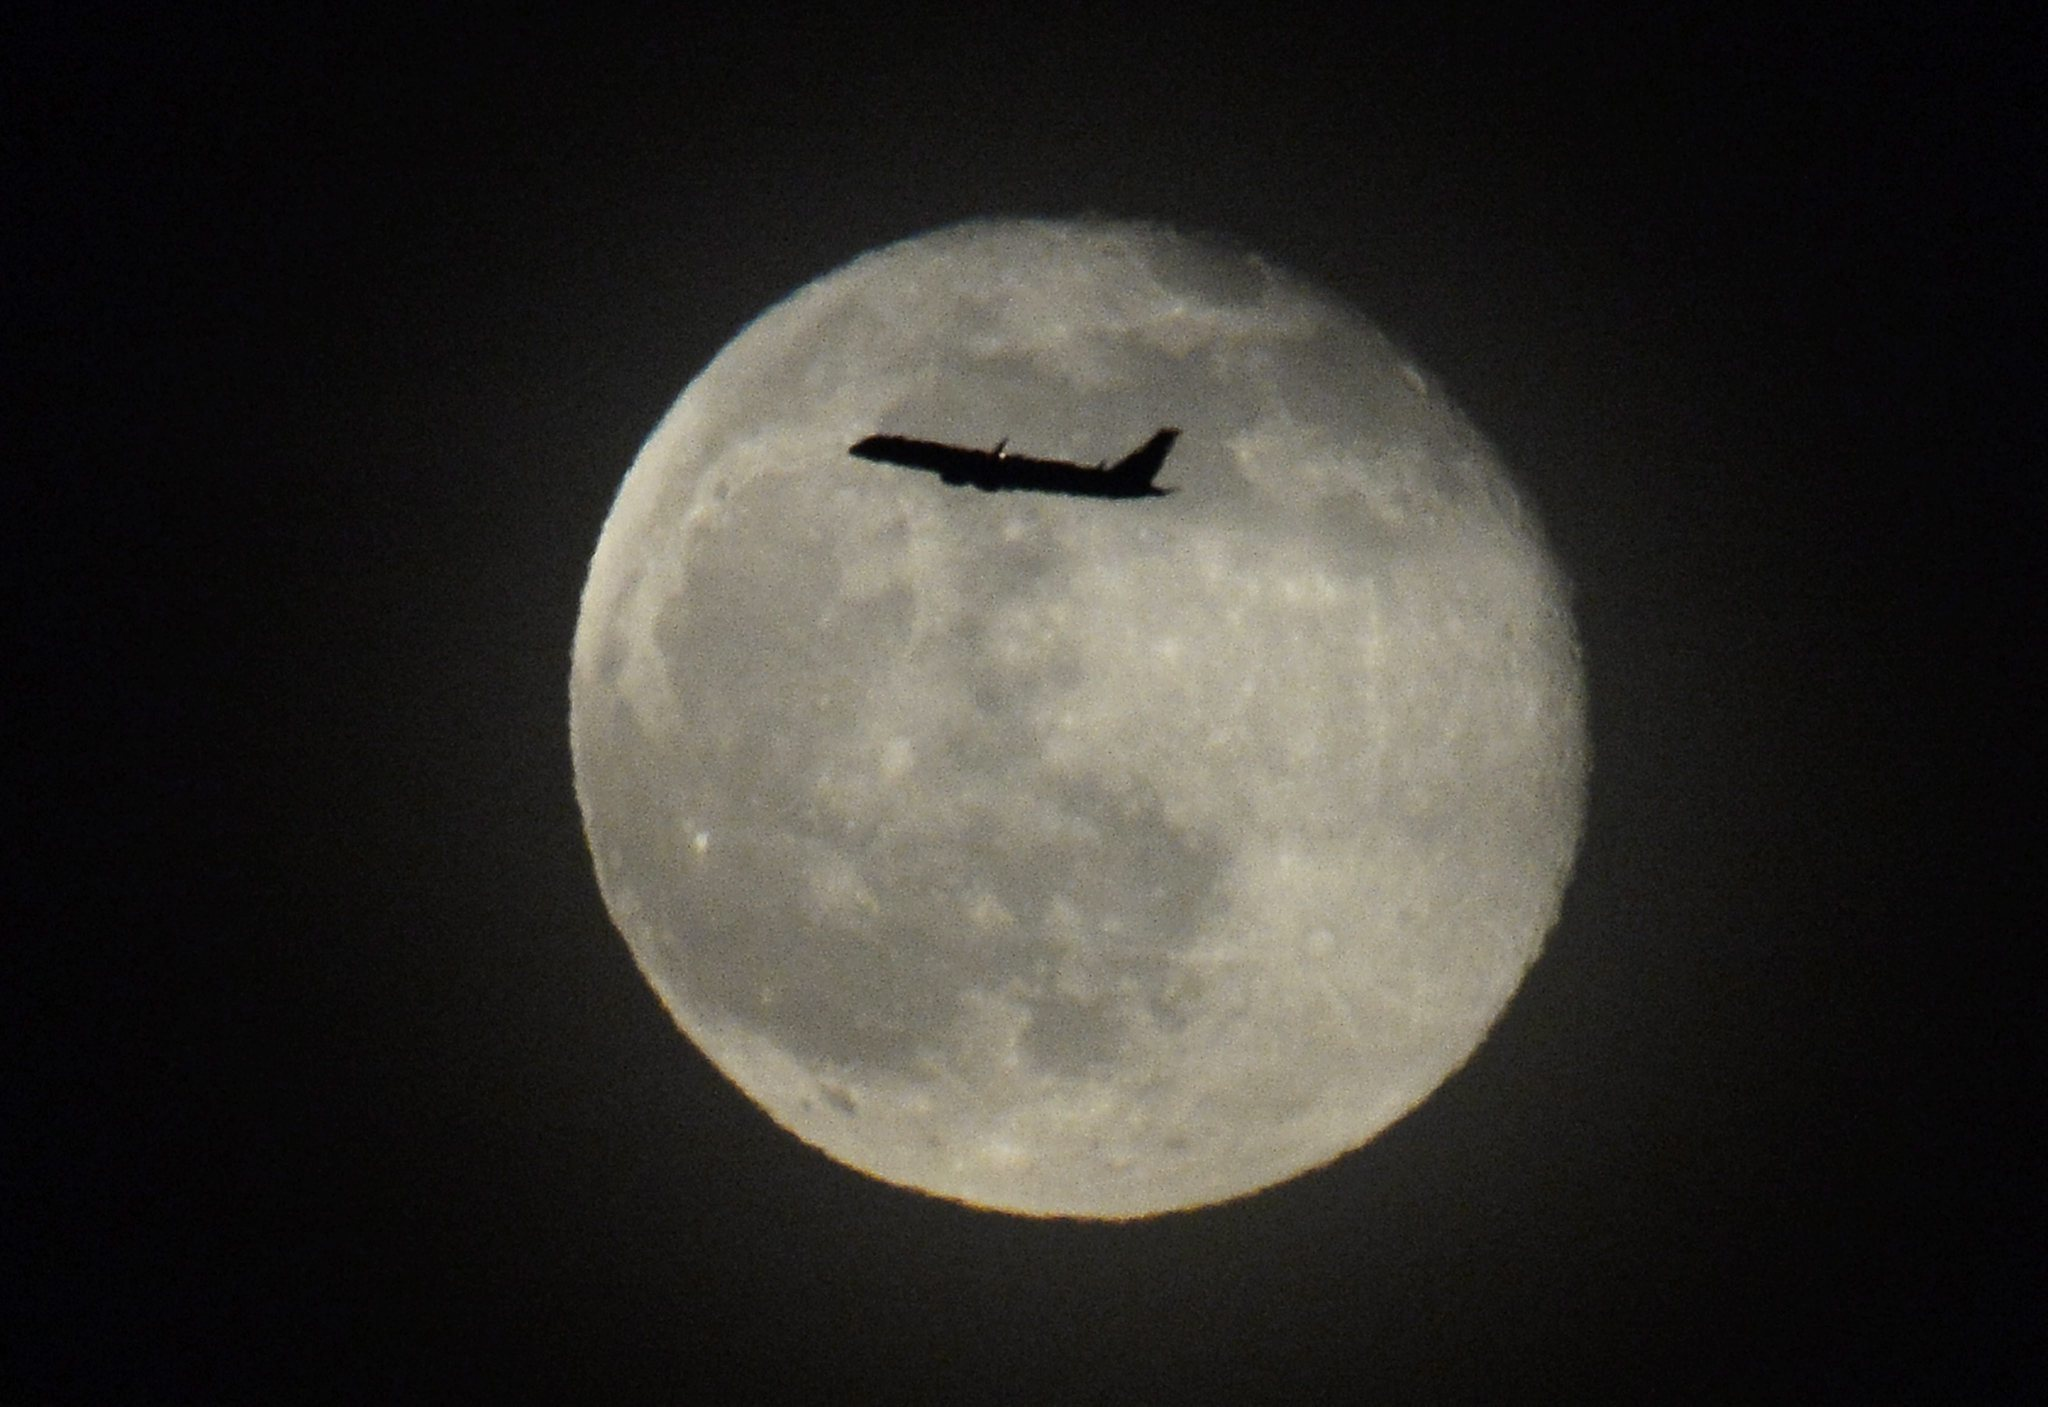 Full moon and Friday the 13th collide this week - LA Times